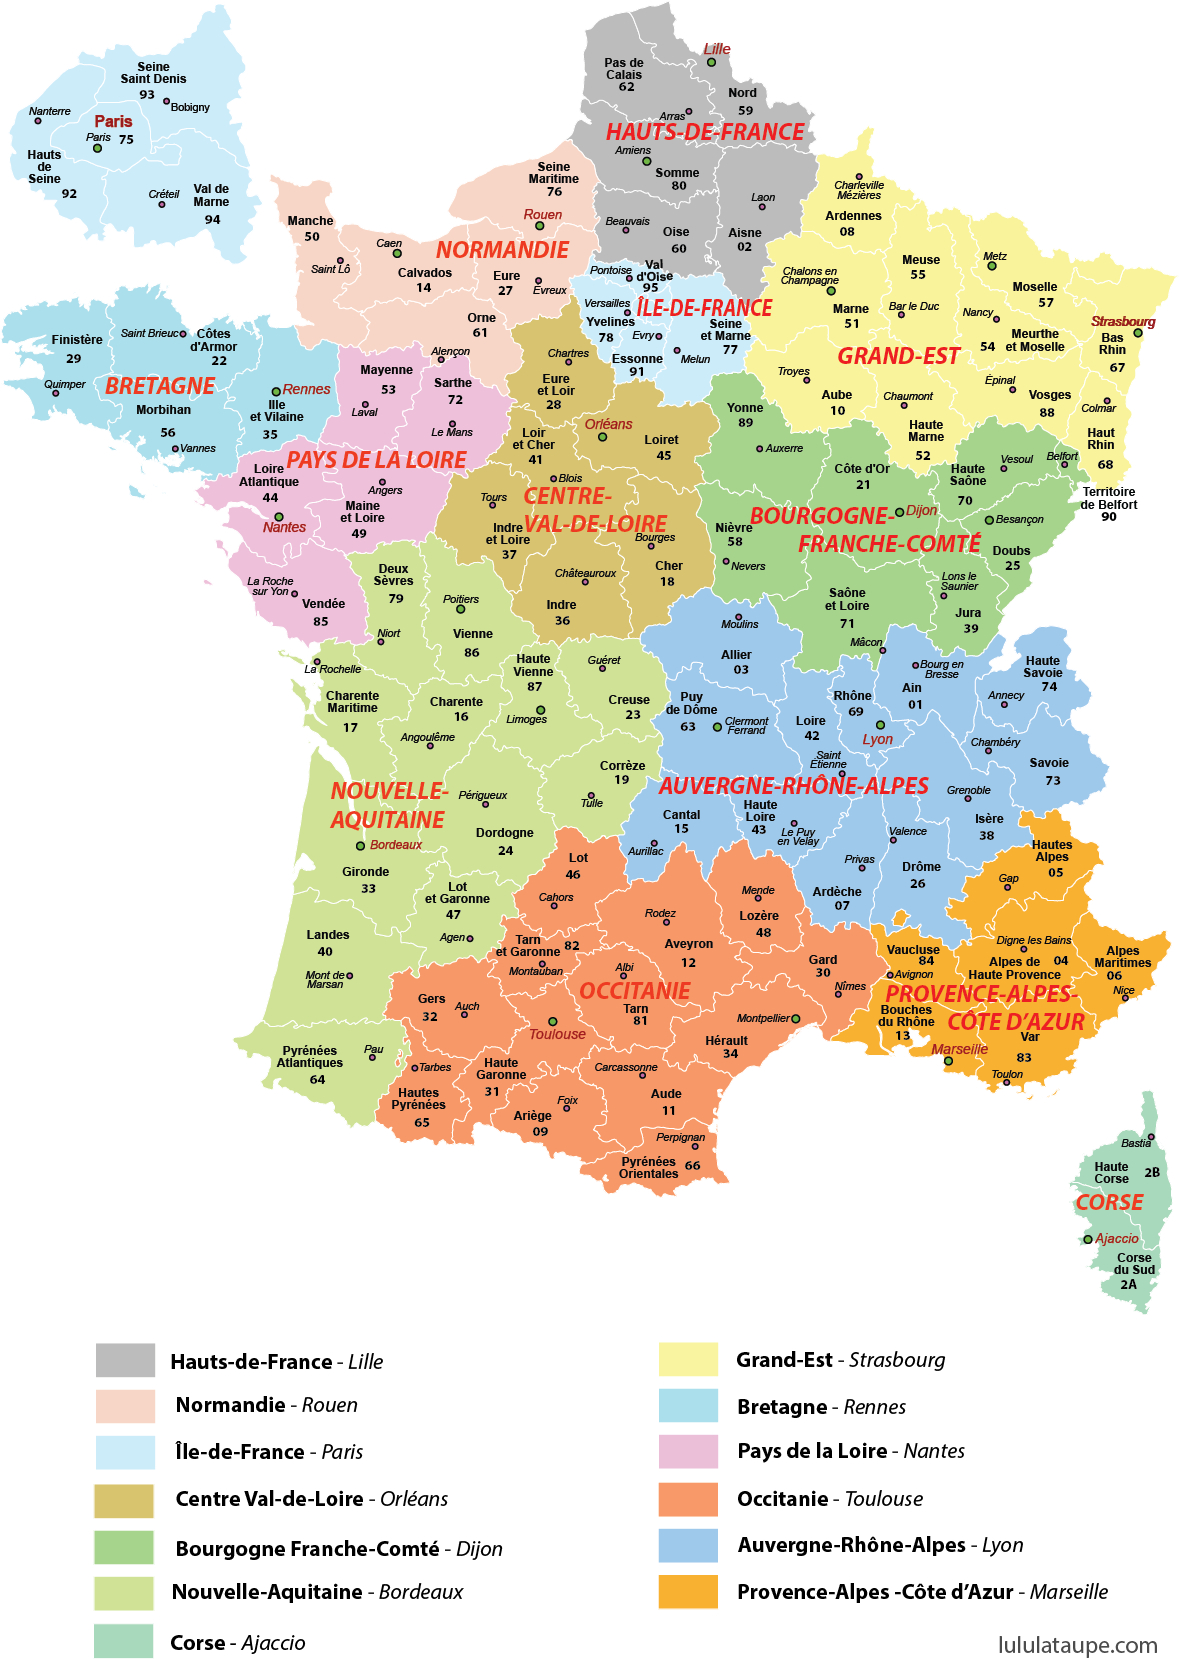 Dpartements #prfectures #imprimer #rgions #france #carte avec Decoupage Region France